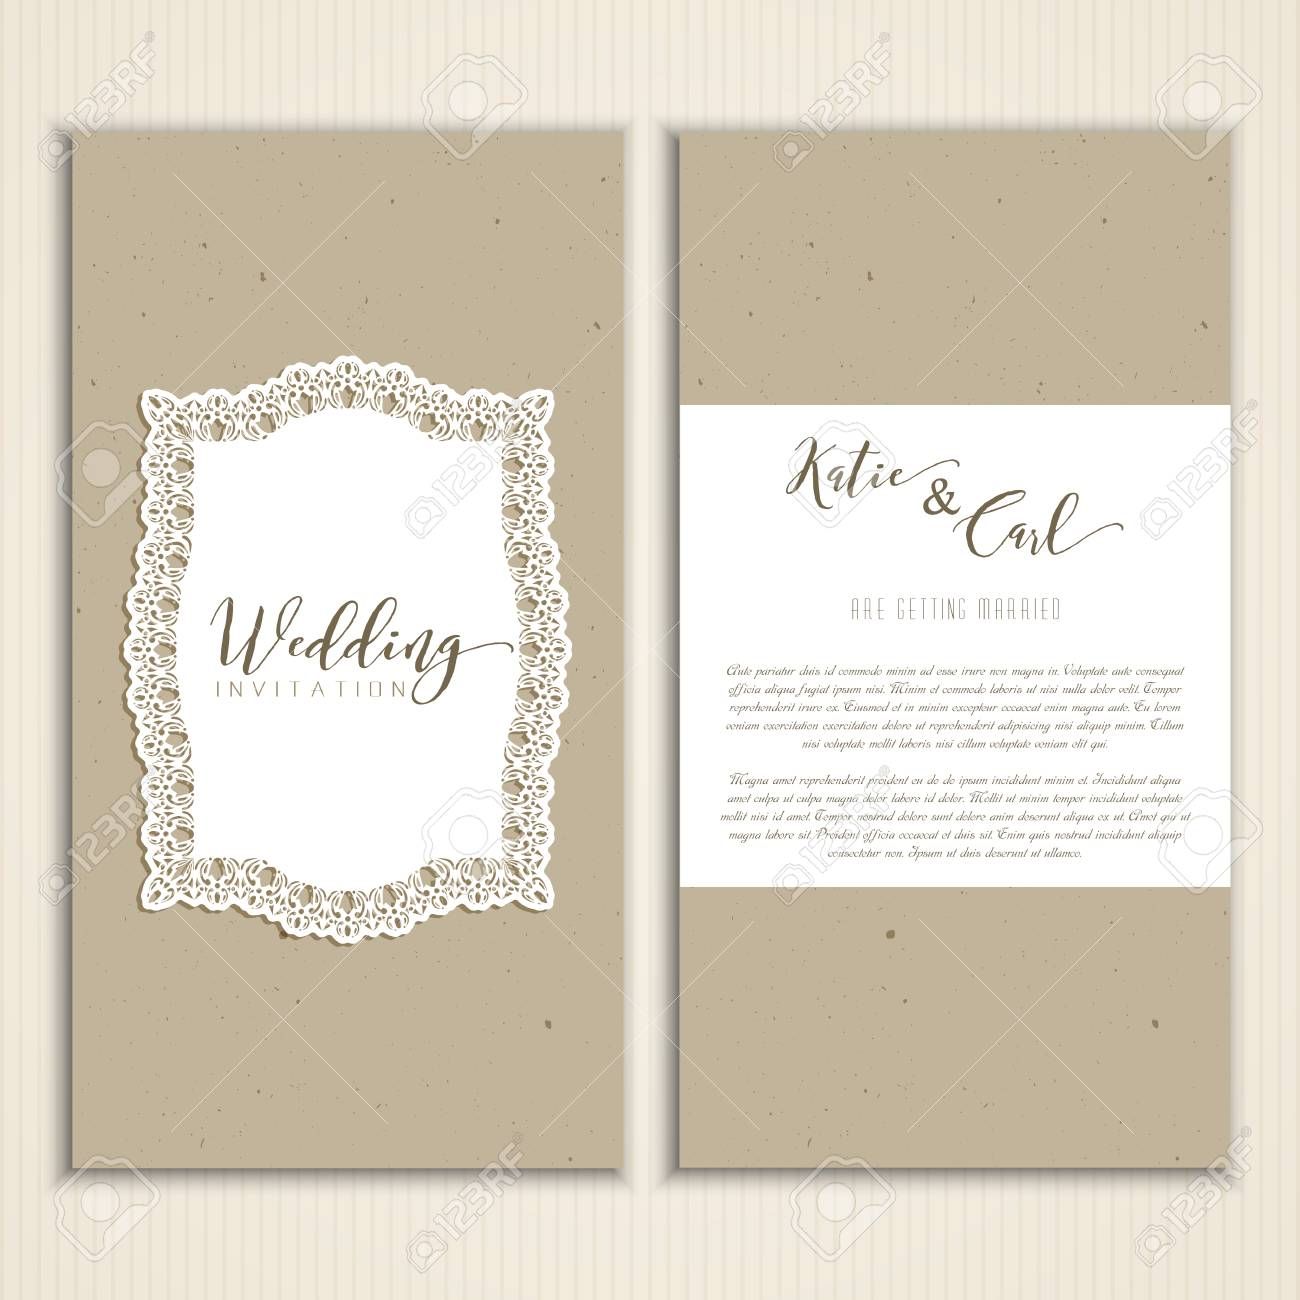 Wedding Invitation With Cardboard Style Texture And Lace Label Stock ...